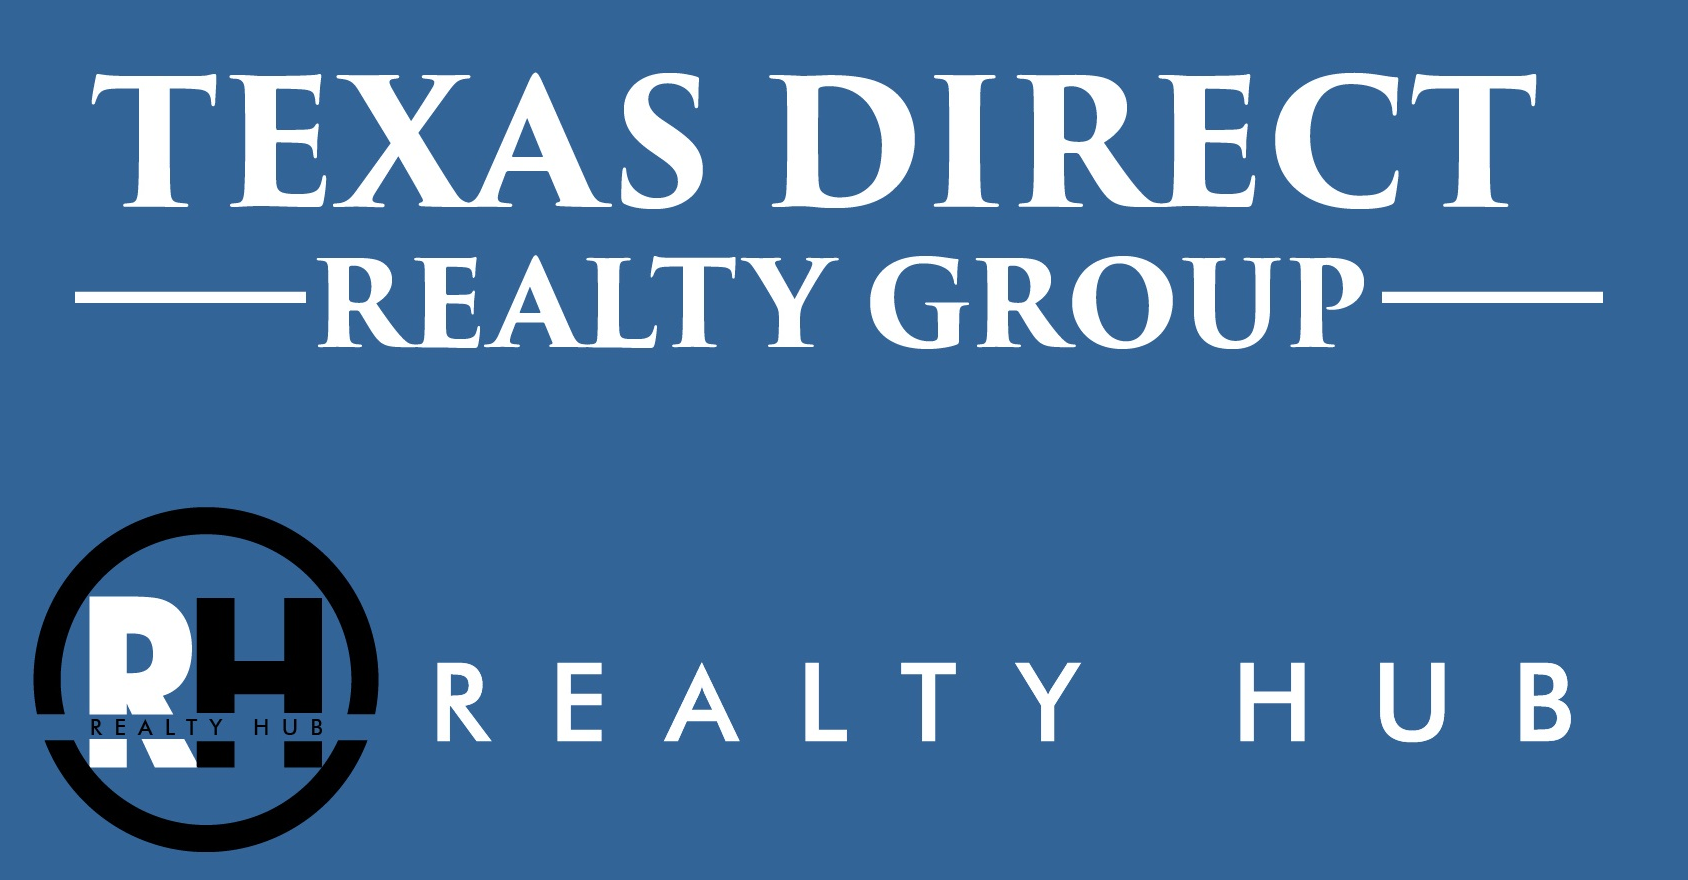 Texas Direct Realty Group POWERED by REALTY HUB, a chatbot developer